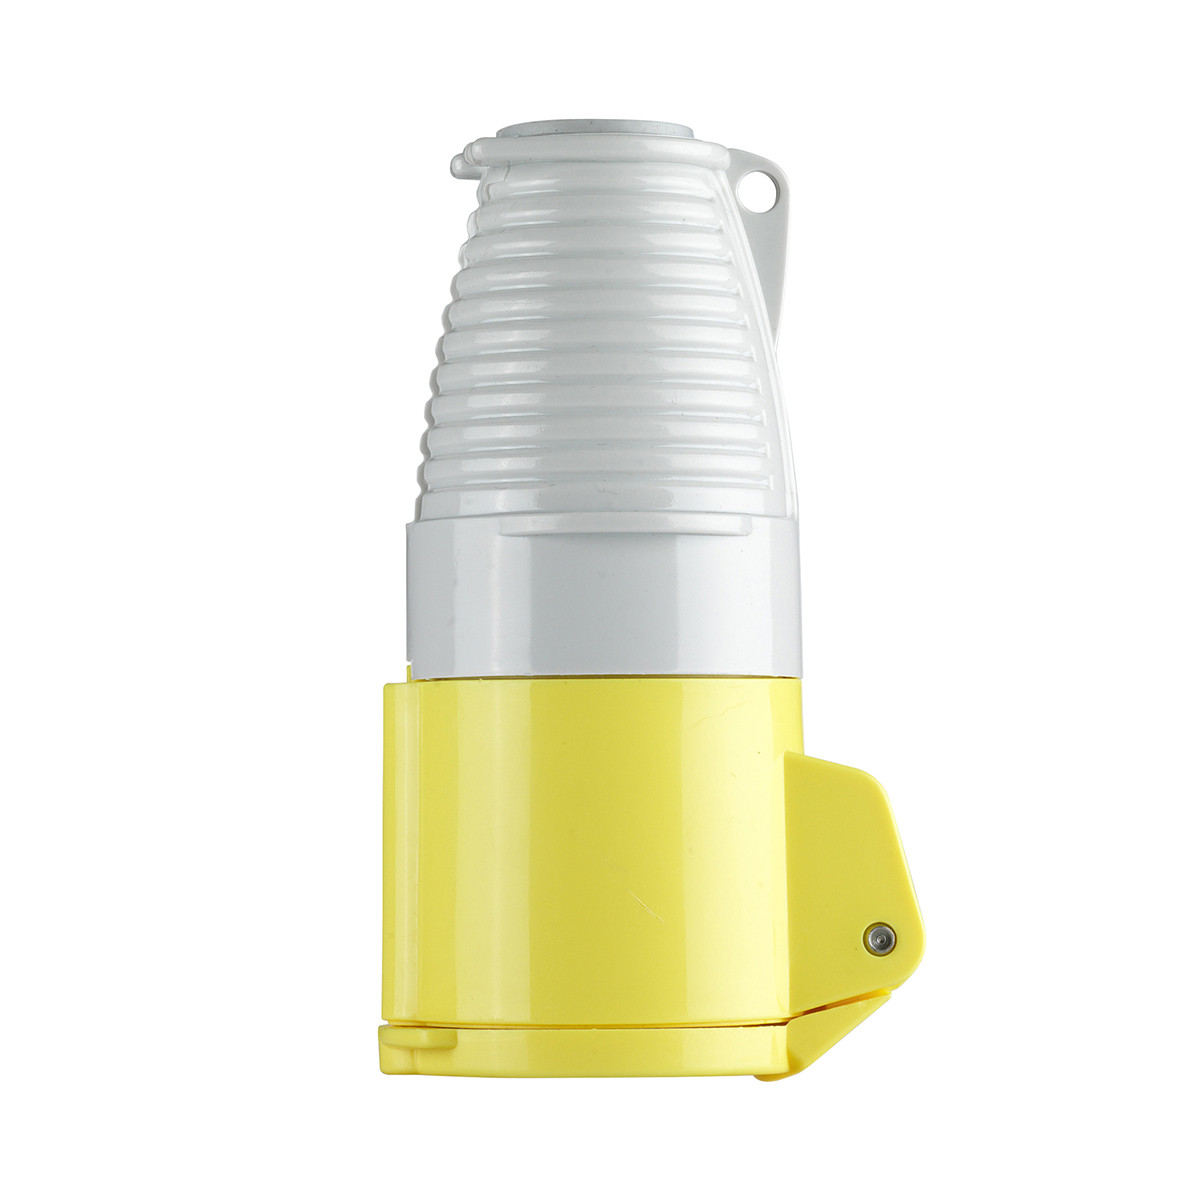 Defender 16A Coupler - Yellow - Display Packed 110V